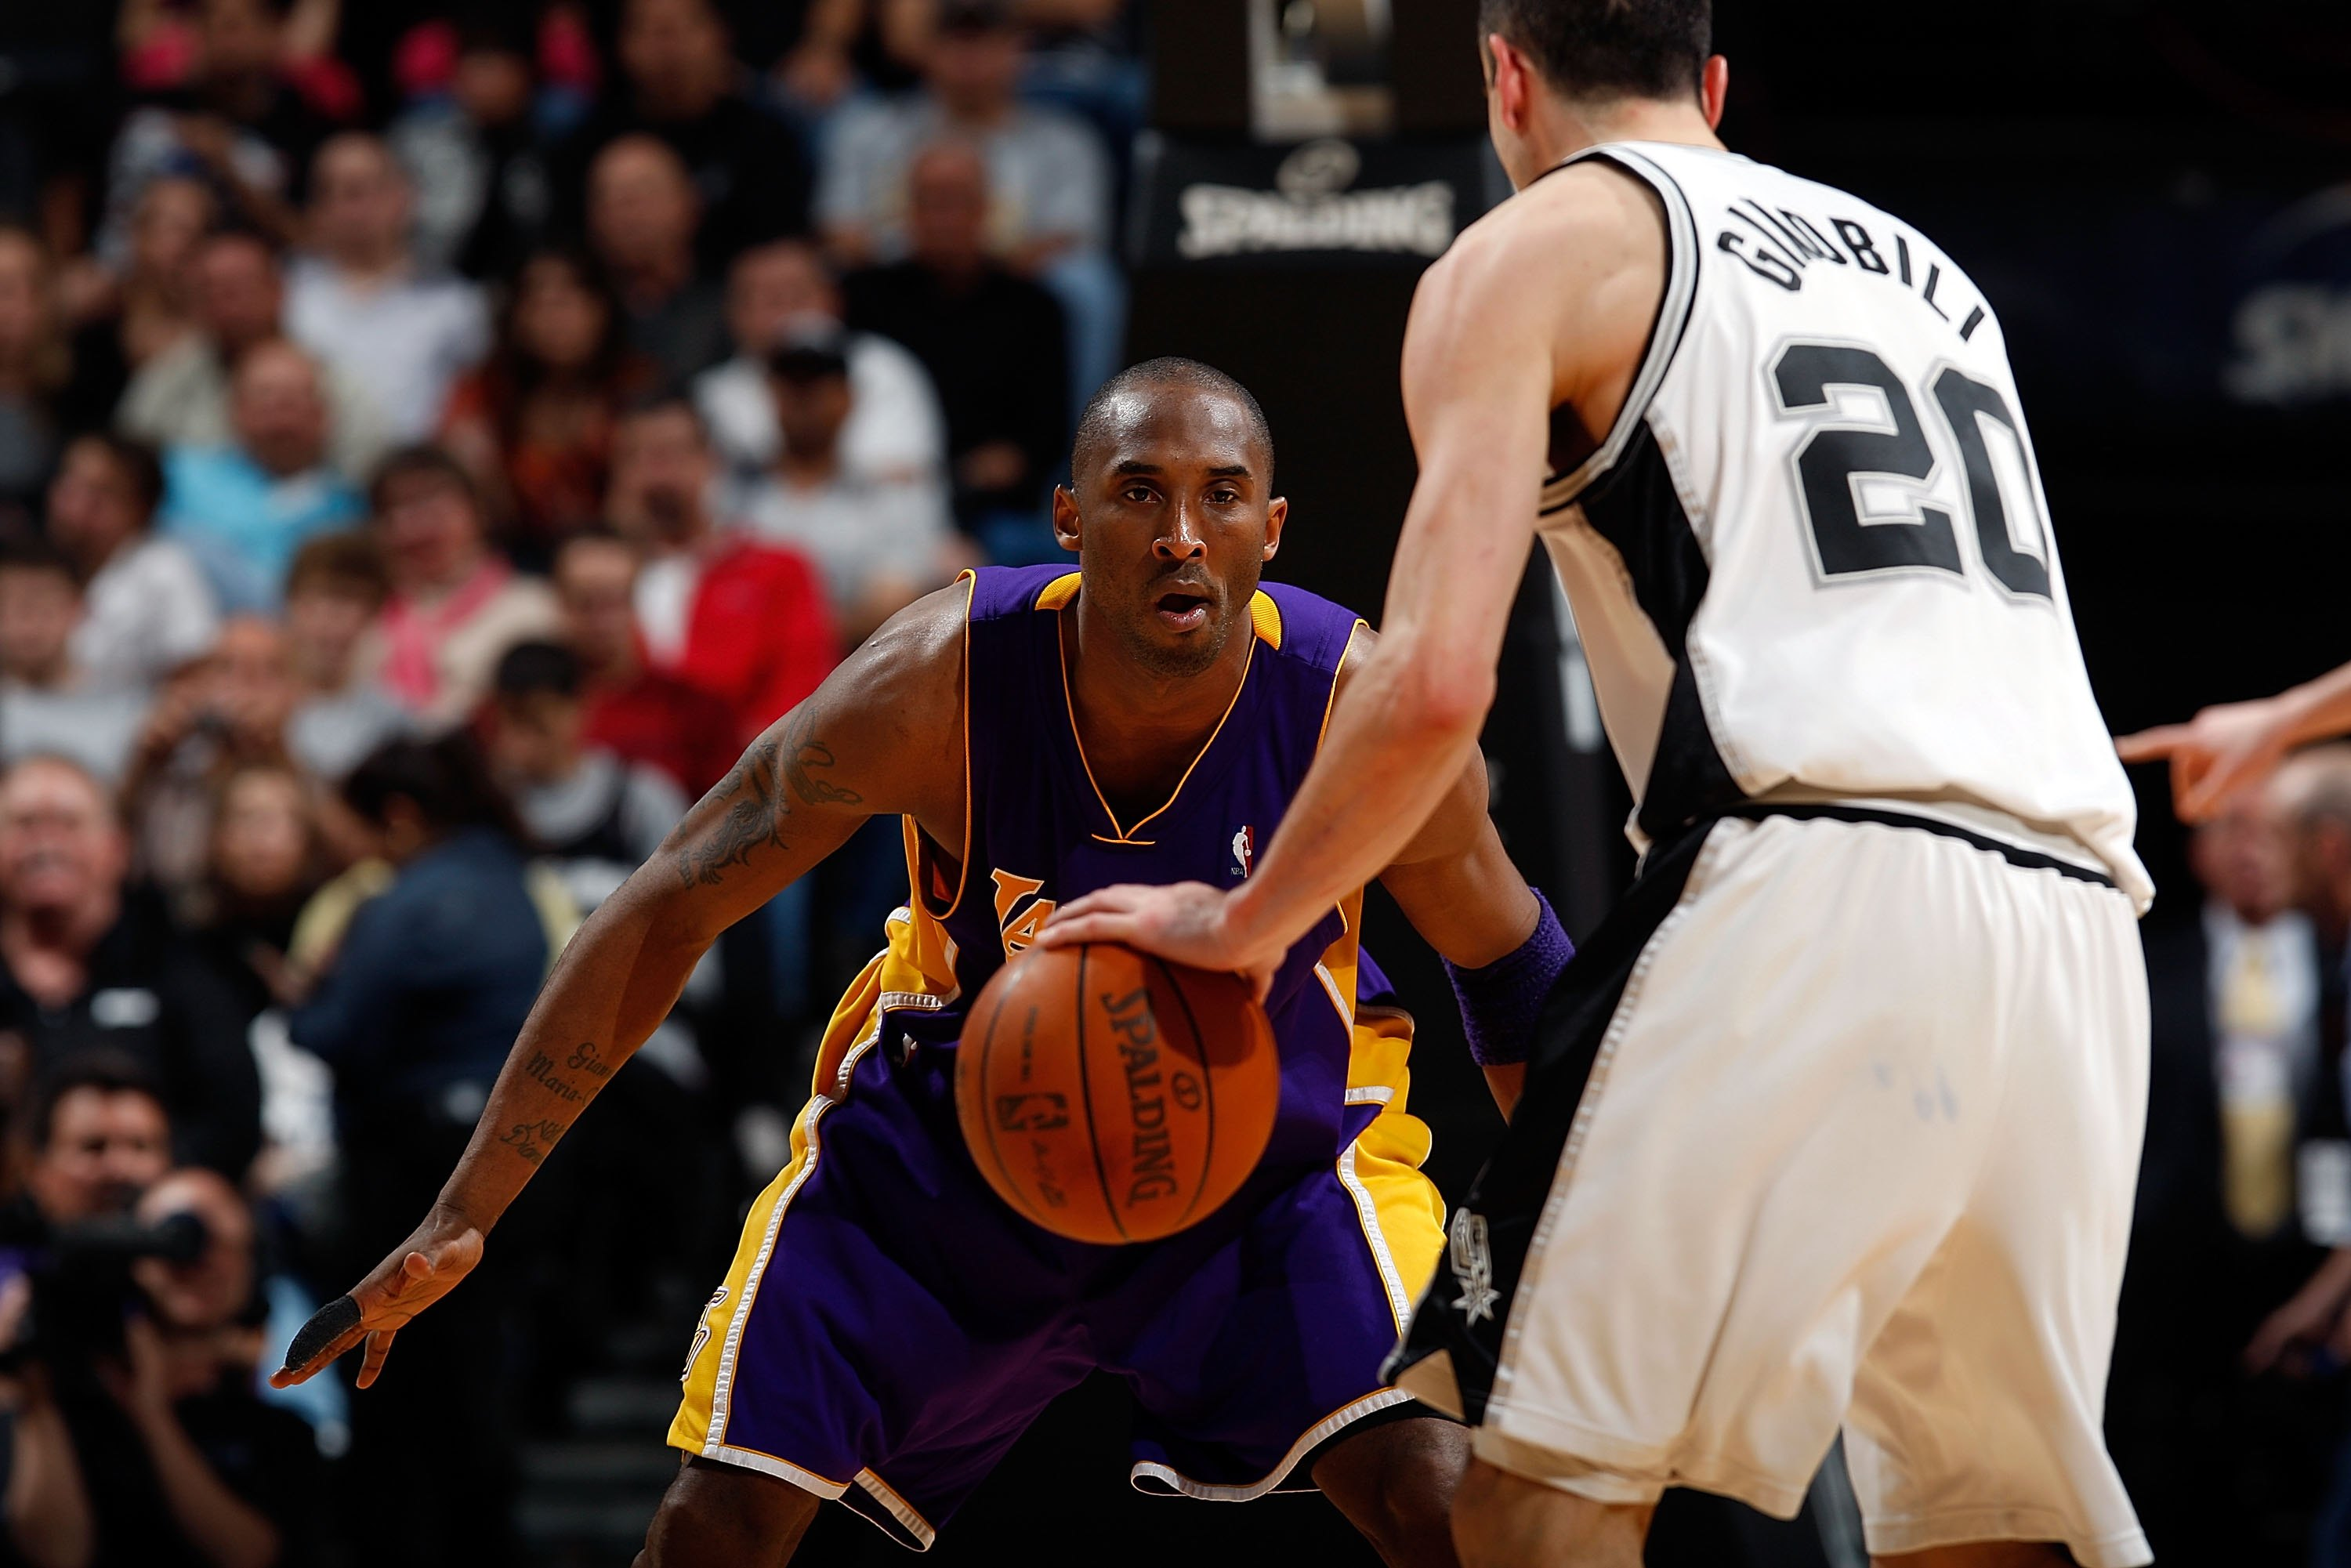 SAN ANTONIO - MARCH 24:  Kobe Bryant #24 of the Los Angeles Lakers at AT&T Center on March 24, 2010 in San Antonio, Texas.  NOTE TO USER: User expressly acknowledges and agrees that, by downloading and/or using this Photograph, user is consenting to the t